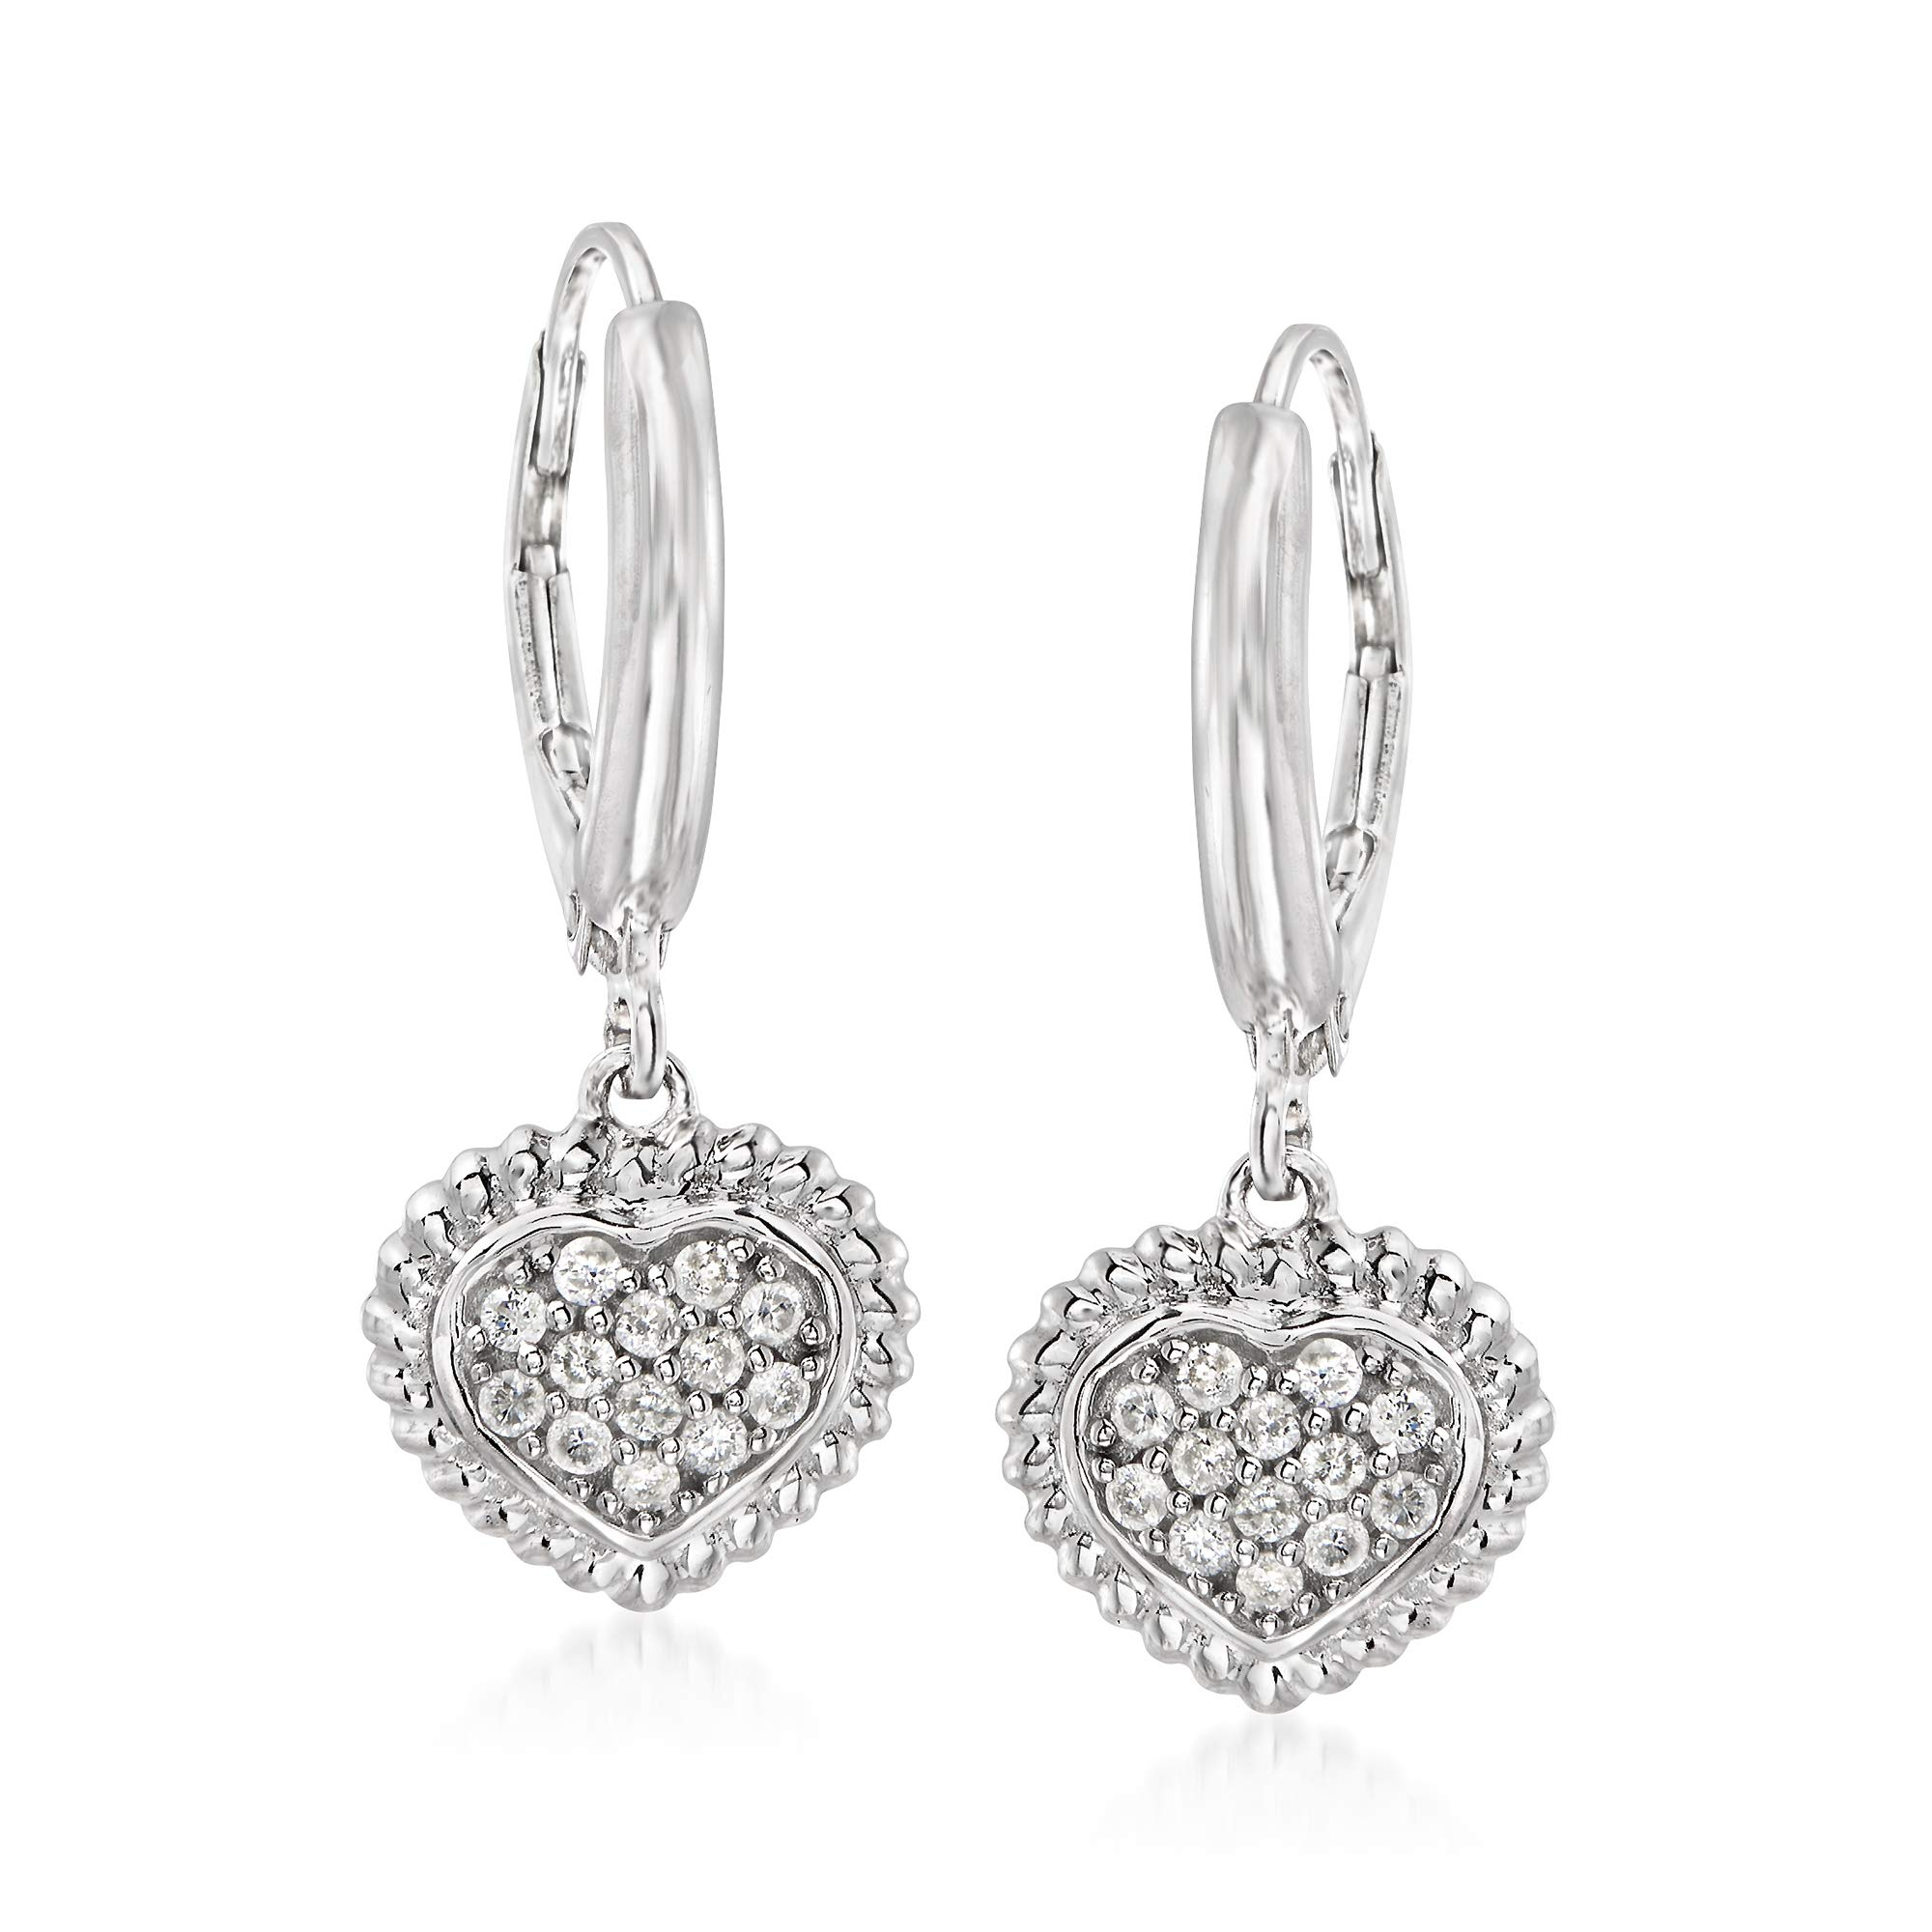 Ross-Simons 0.26 ct. t.w. Pave Diamond Heart Drop Earrings in Sterling Silver